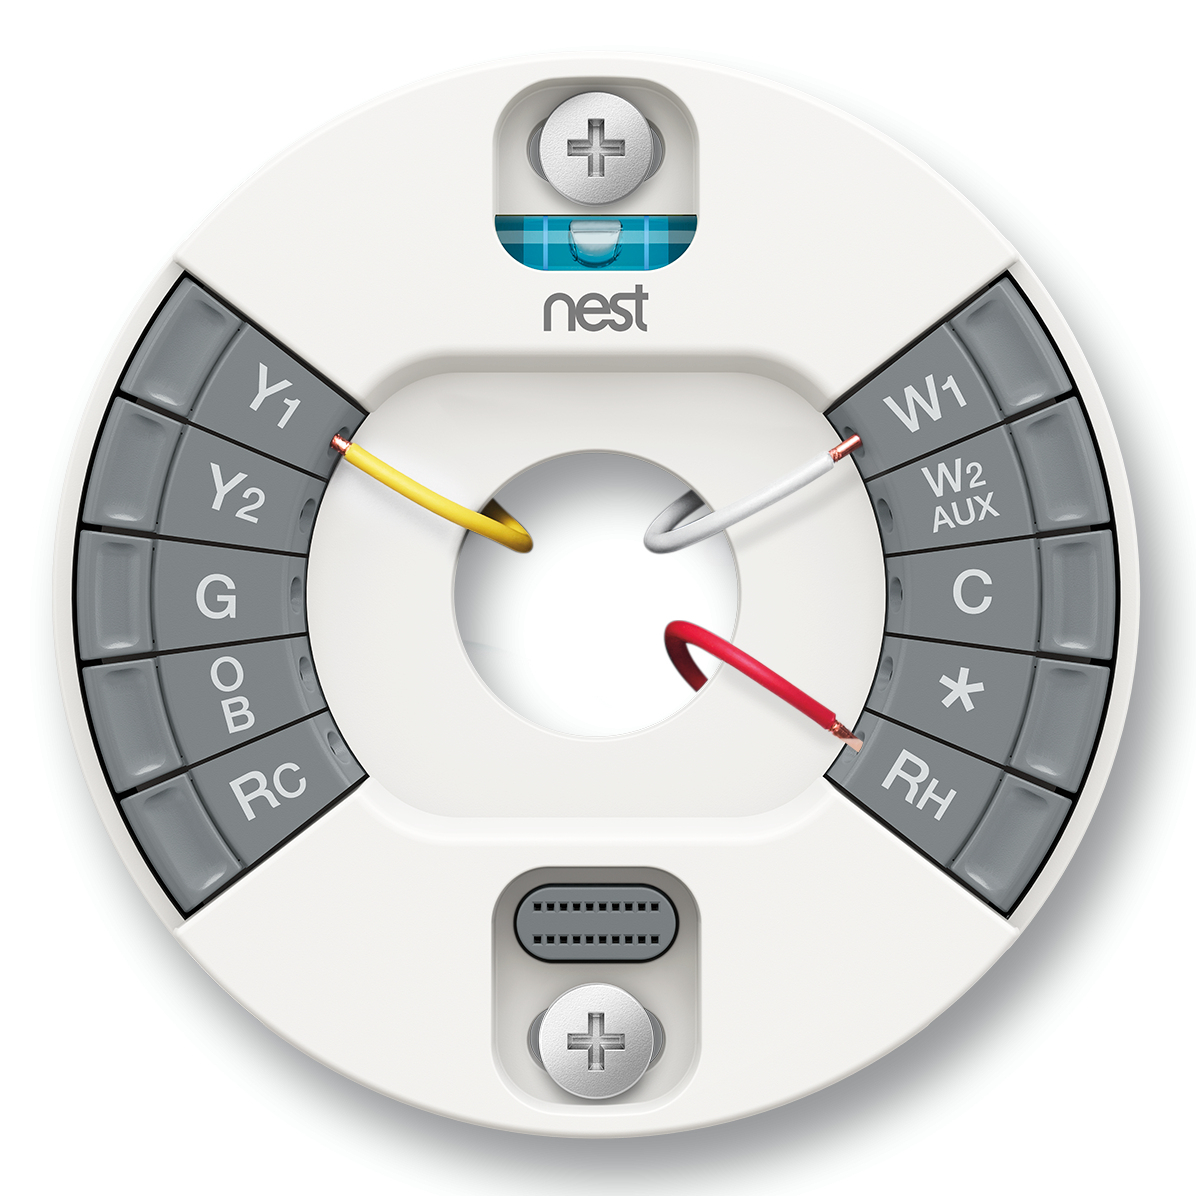 How To Connect Nest Thermostat Nest Thermostat Wire Hookup - Nest Thermostat Wiring Diagram 2 Wire